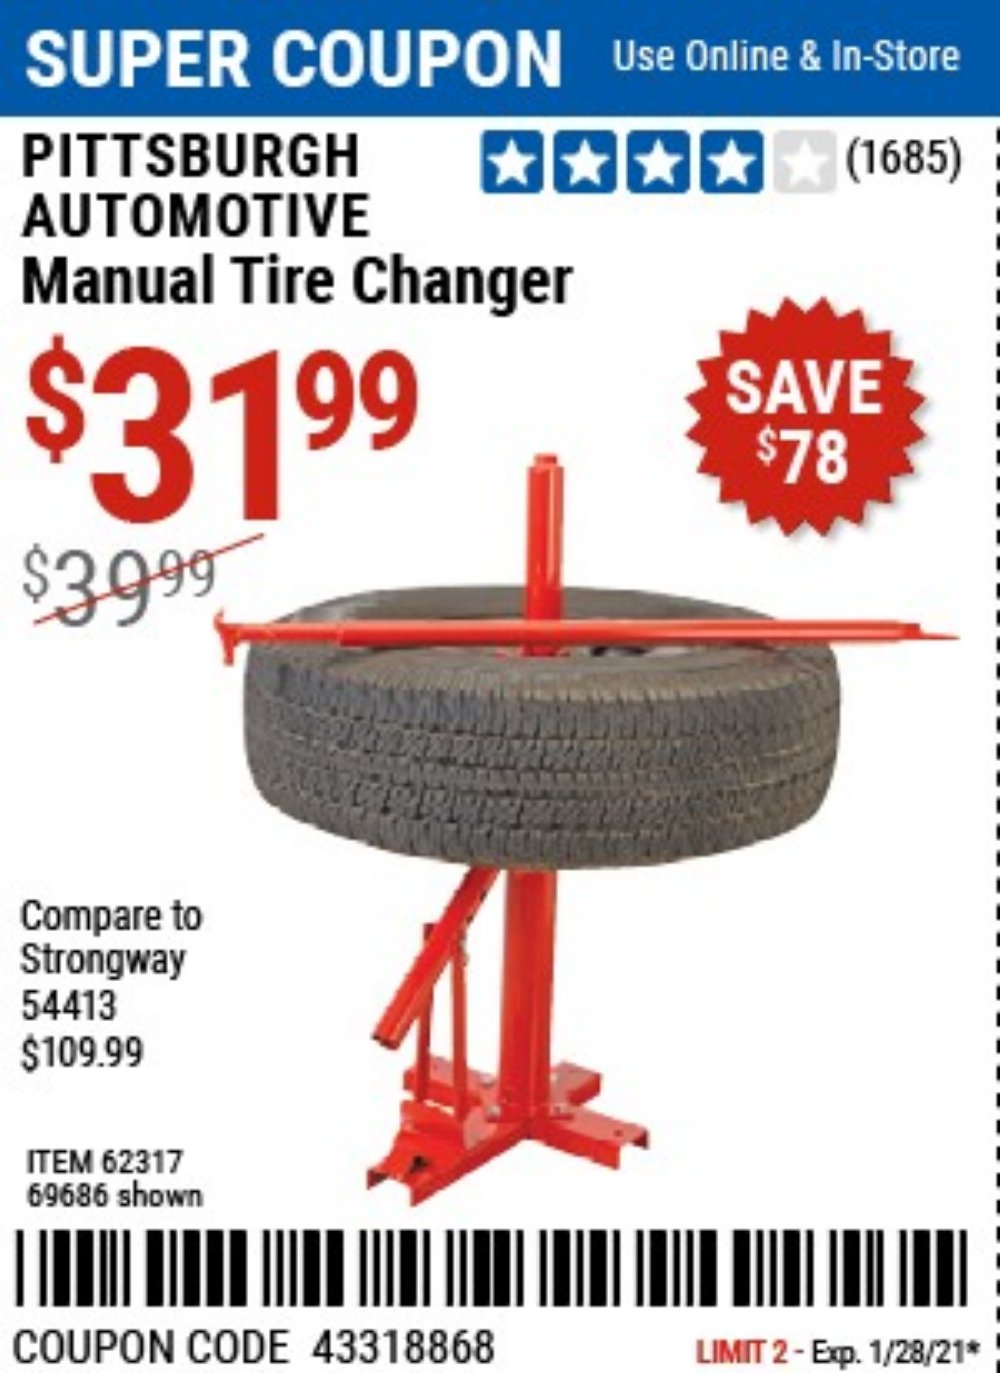 Harbor Freight Coupon, HF Coupons - Tire Changers